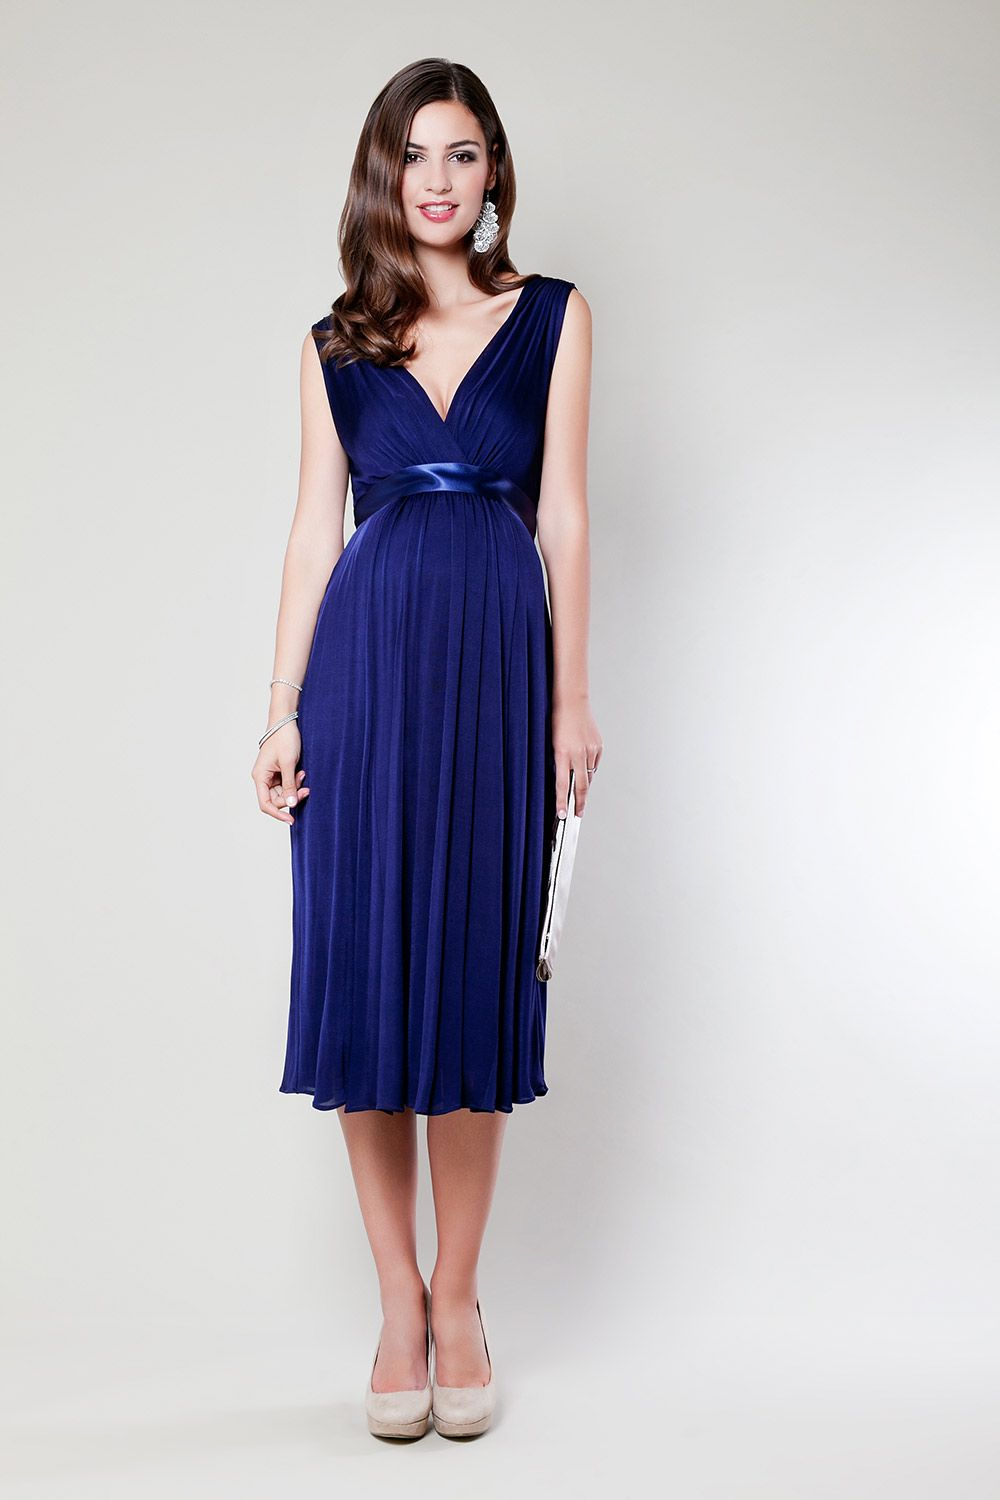 The best maternity wedding guest dresses wedding guest for Maternity guest wedding dresses